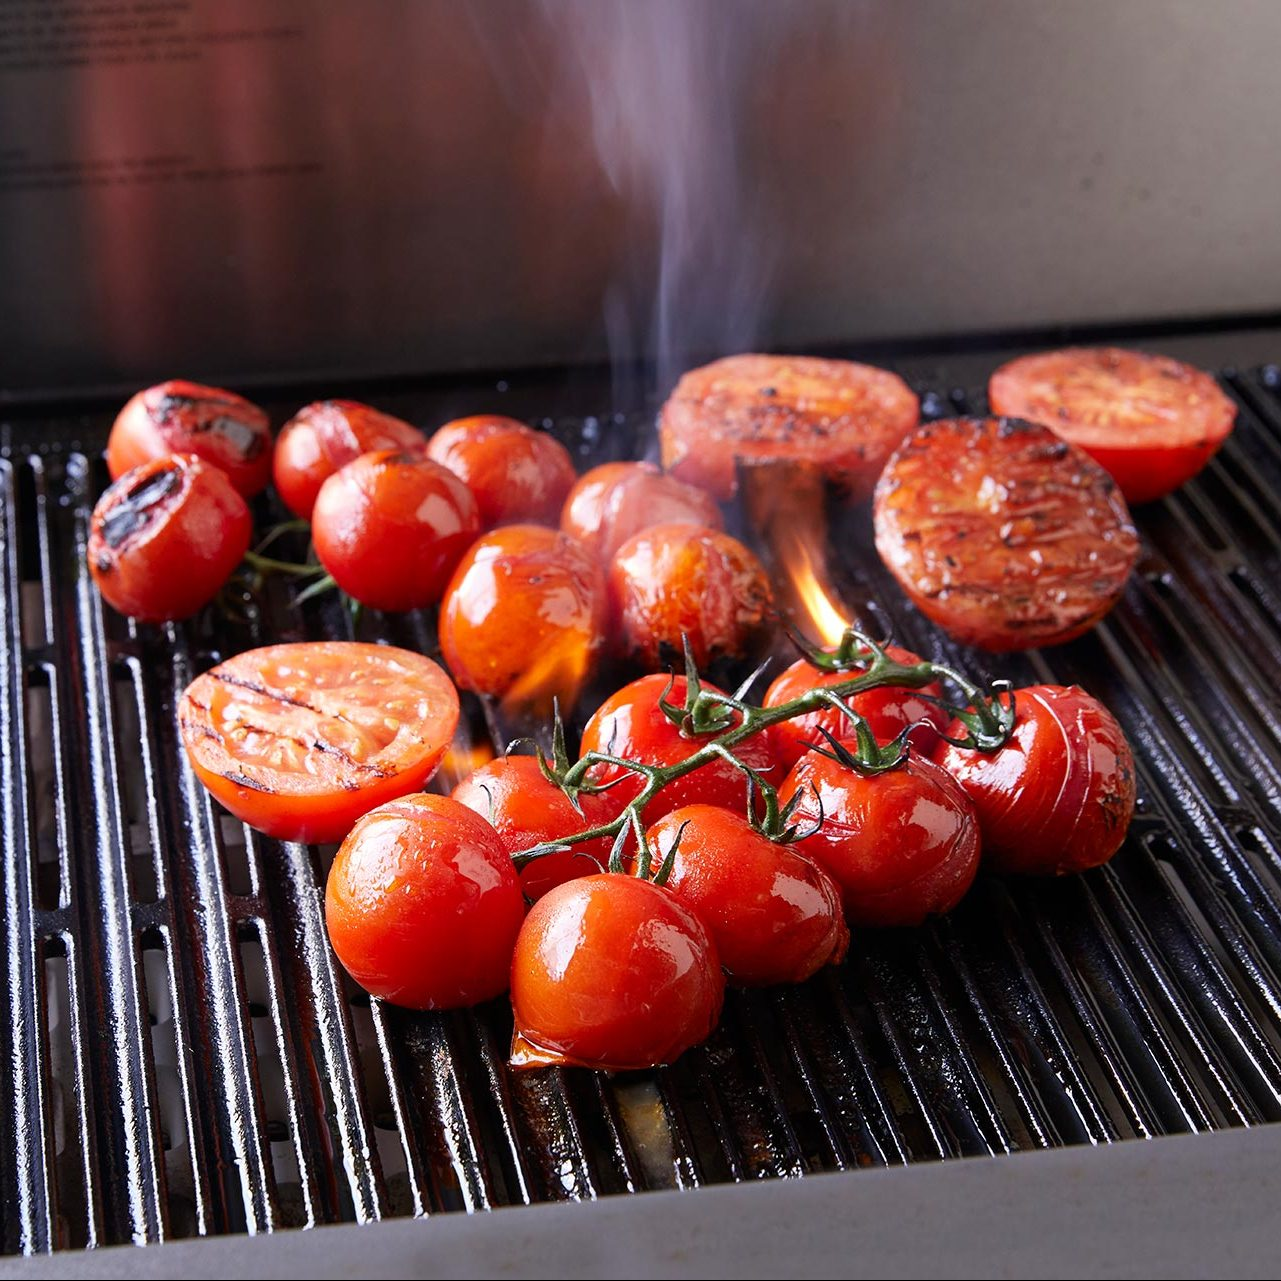 Blush Tomatoes on the BBQ